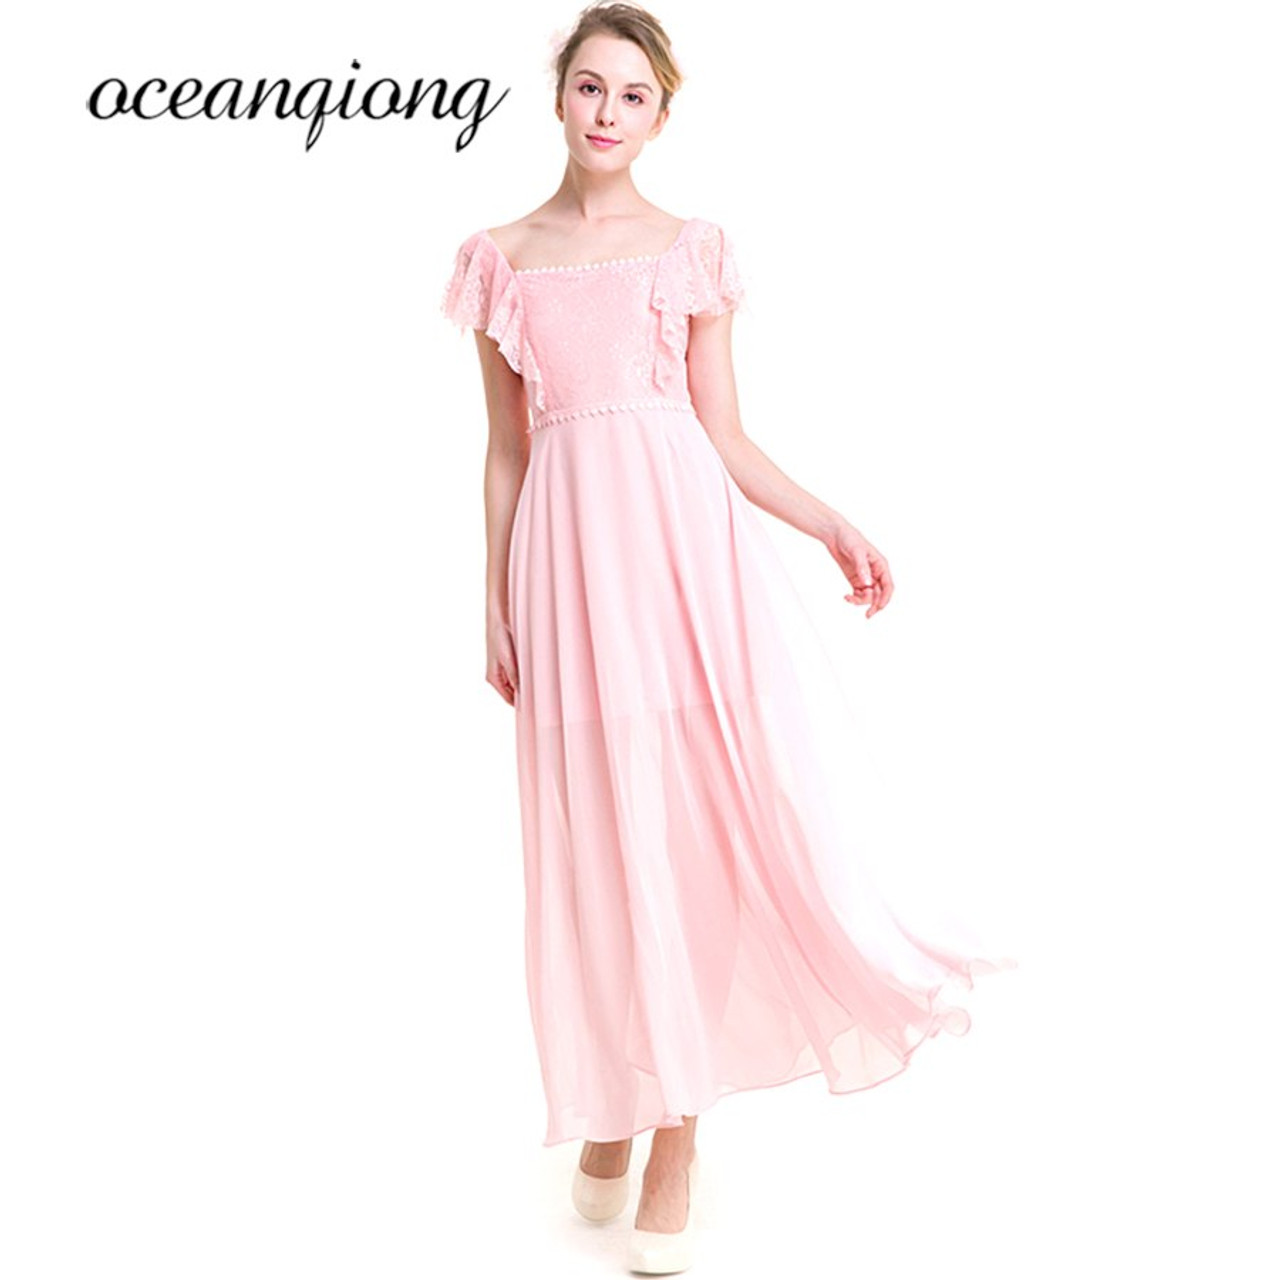 425965881f864 ... 2018 Spring Summer Lace Chiffon Dress Women Sexy Loose Elegant O-neck  Short Sleeve Pink ...